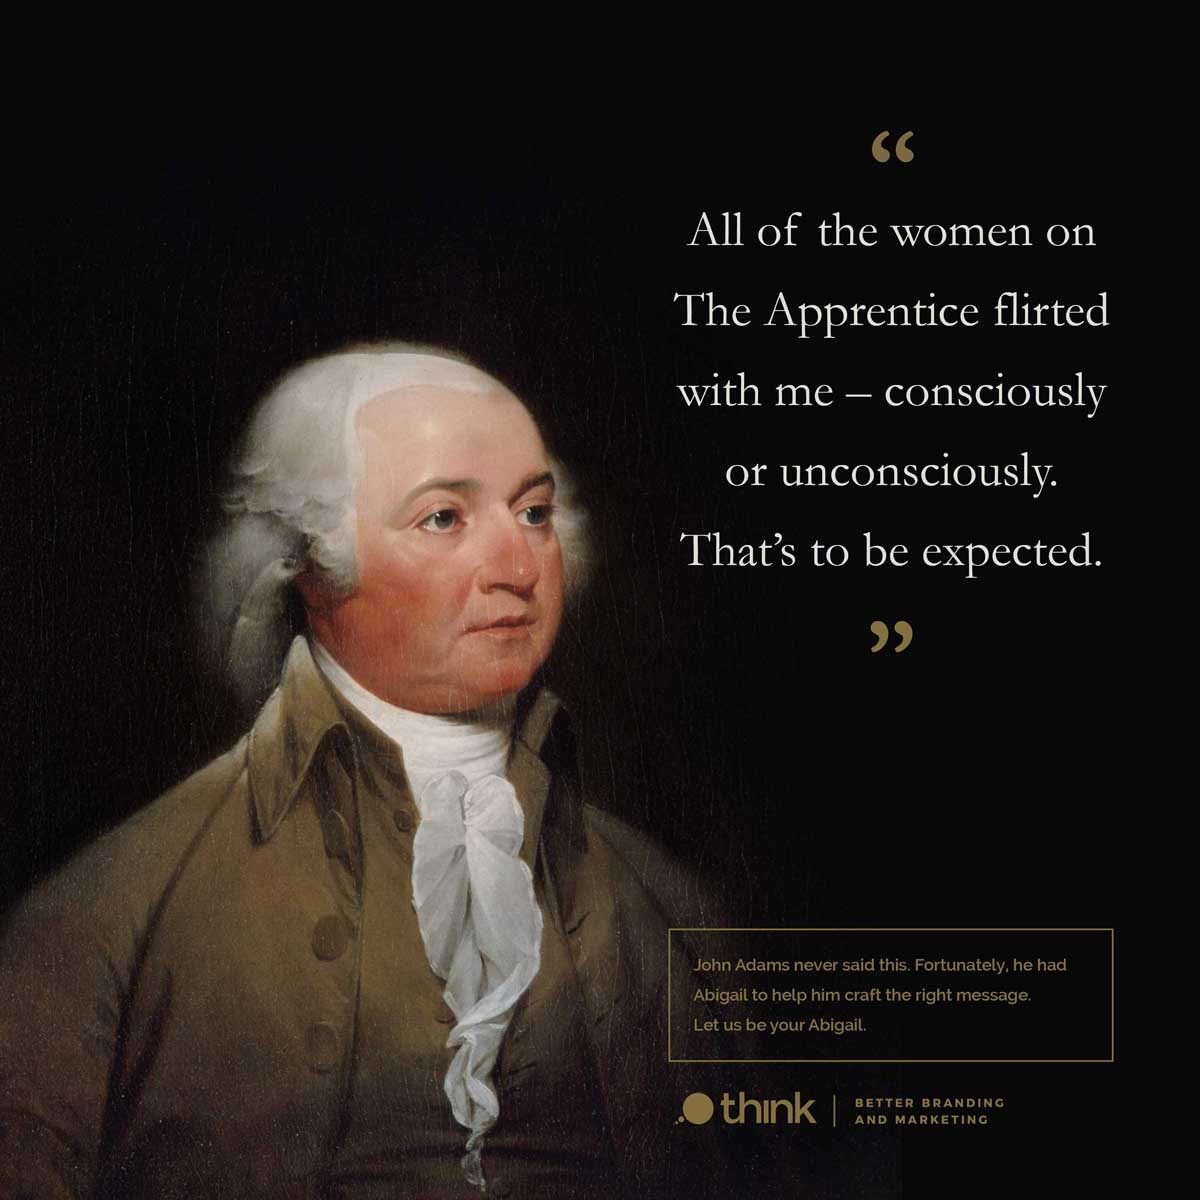 photo of John Adams with a Donald Trump quote